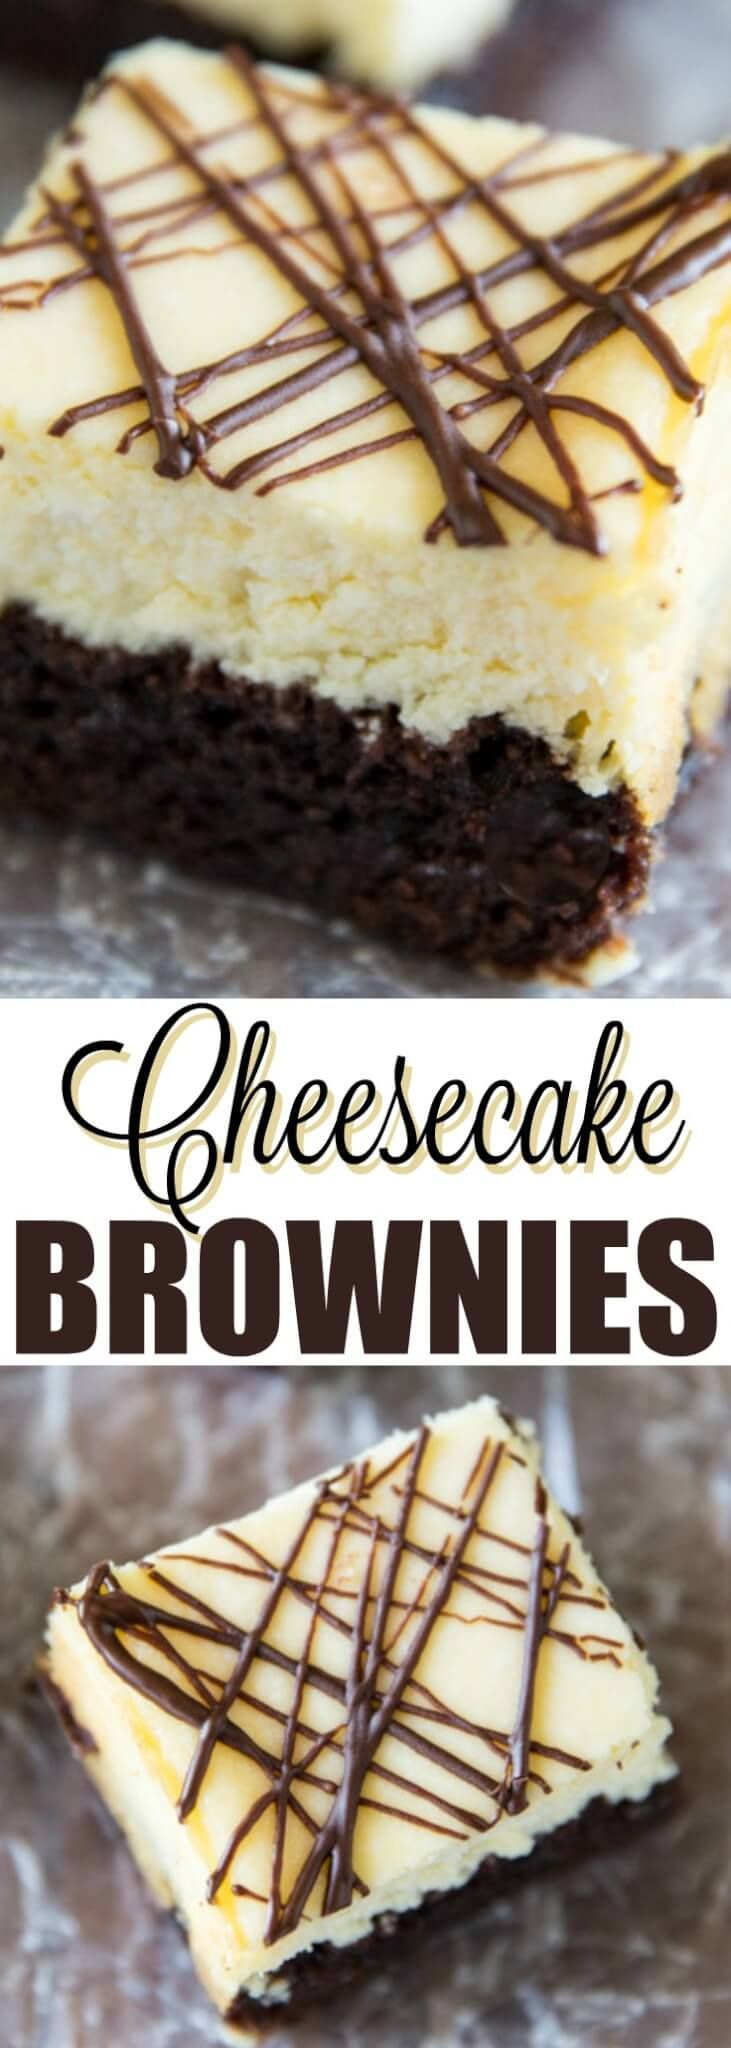 Delicious chocolate brownies topped with creamy cheesecake filling! Quite possibly the perfect dessert. You'll love how easy these Cheesecake Brownies are!